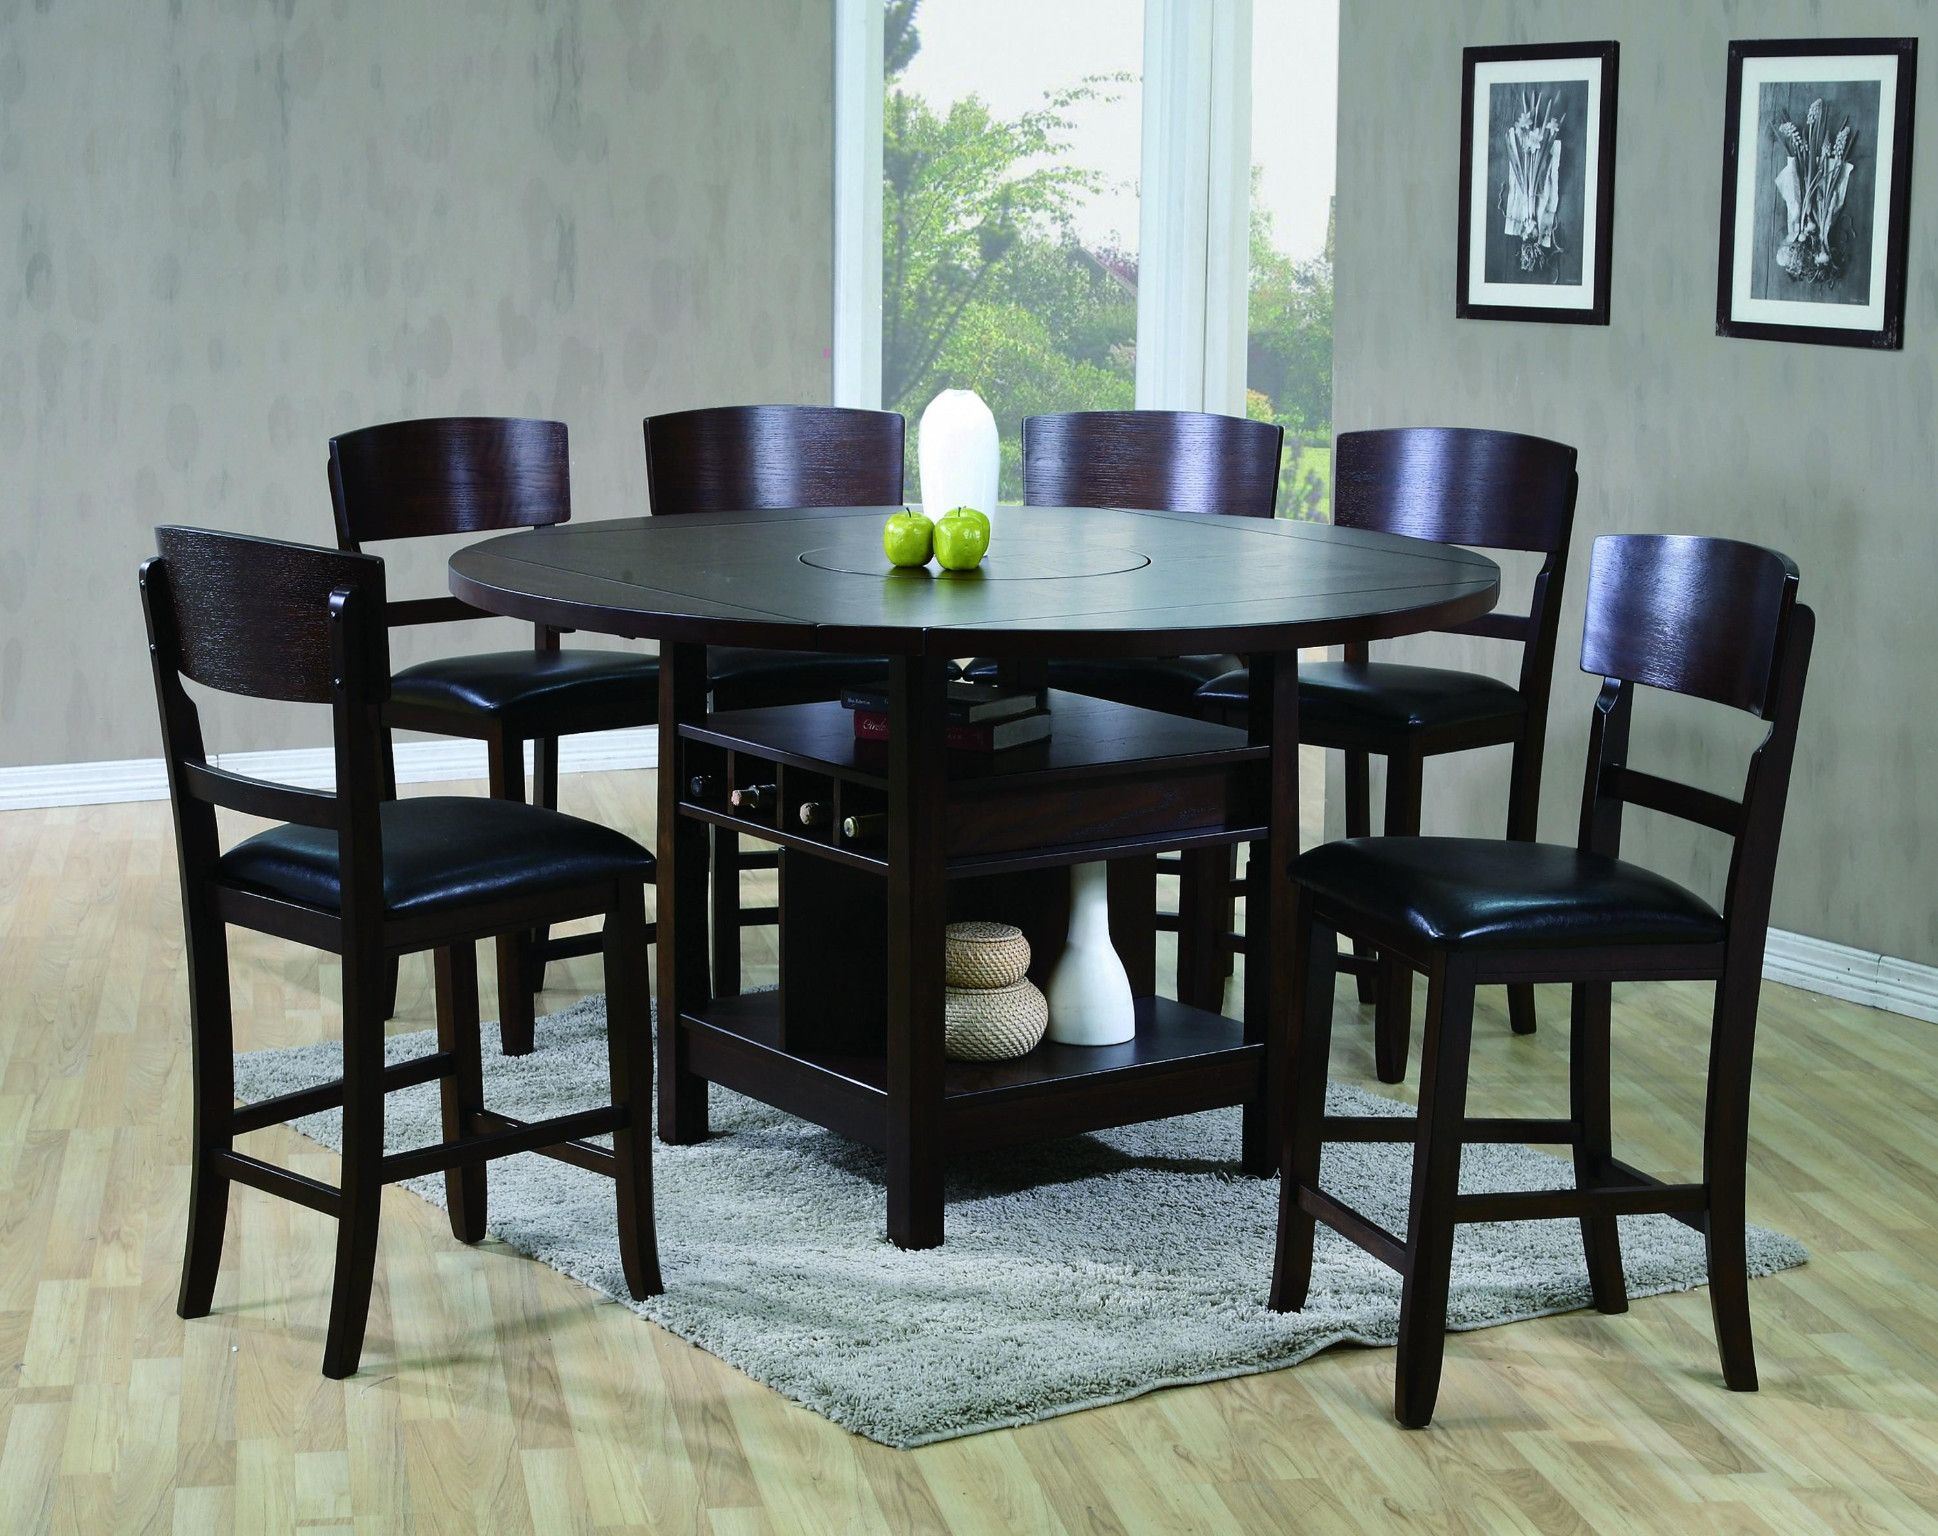 Conner Dark 7 Piece Counter Height Table And 6 Chairs 878